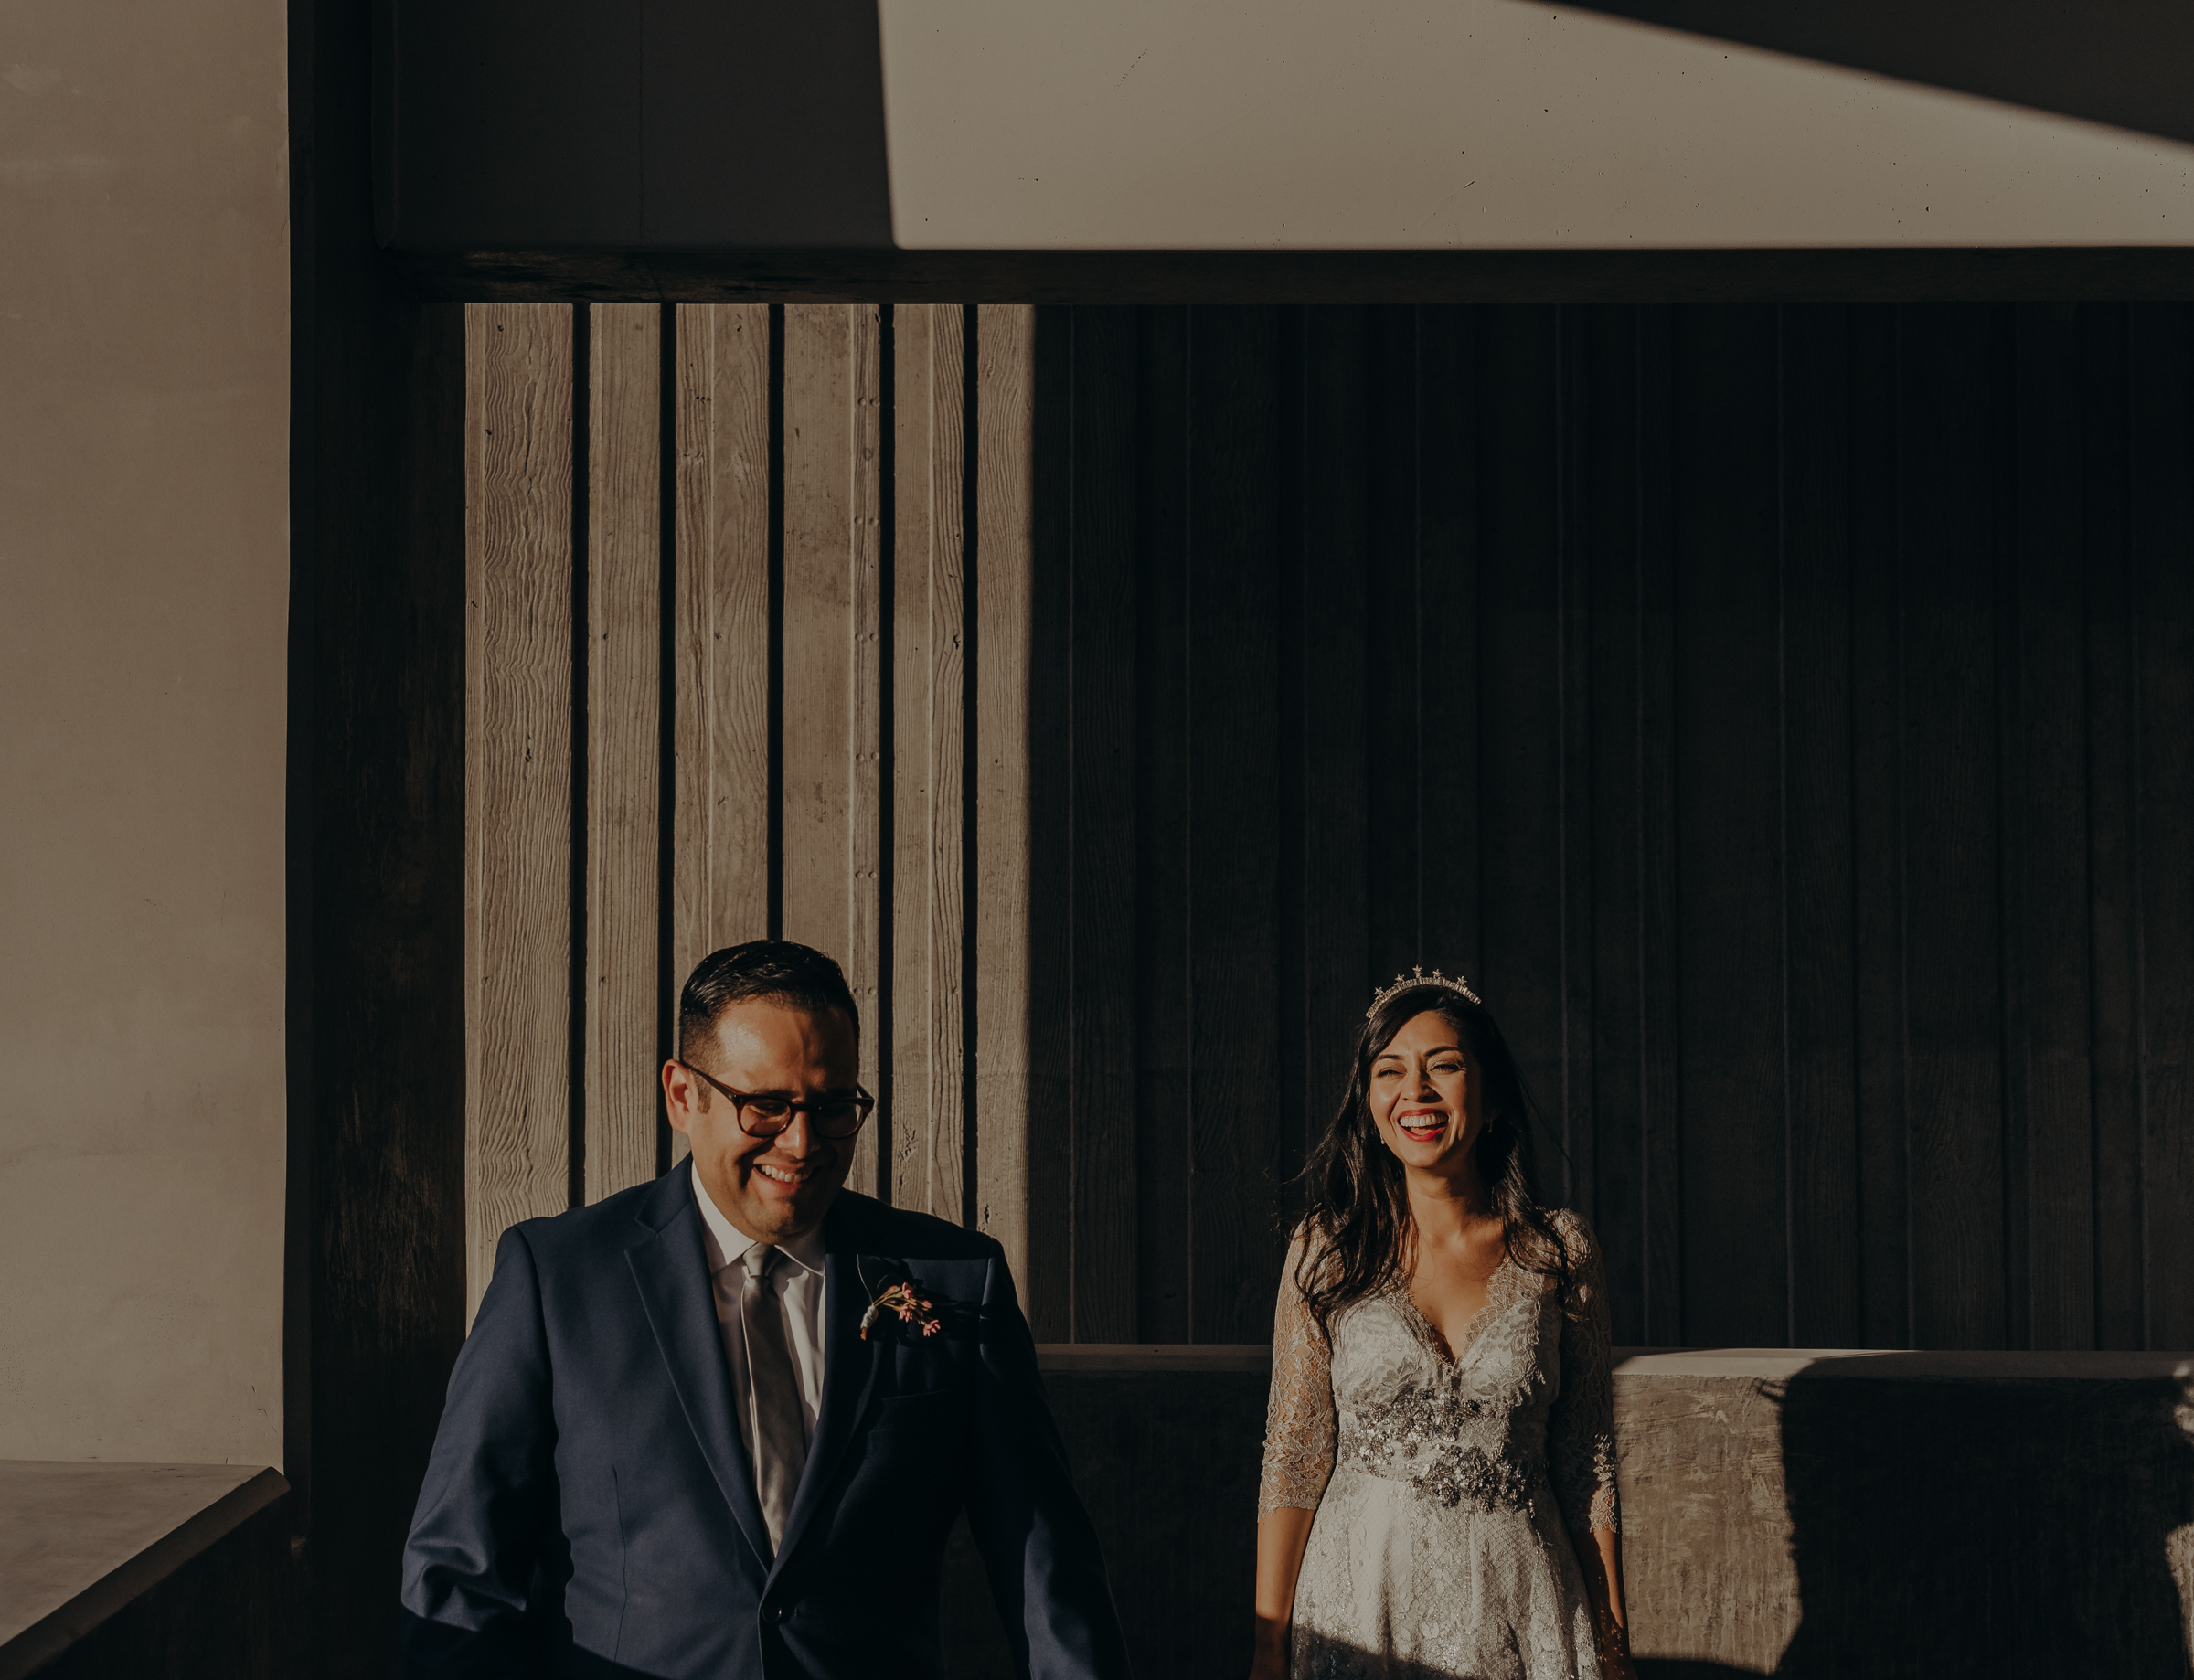 IsaiahAndTaylor.com - Downtown Los Angeles Wedding Photographer - Millwick Wedding - Smog Shoppe-053.jpg